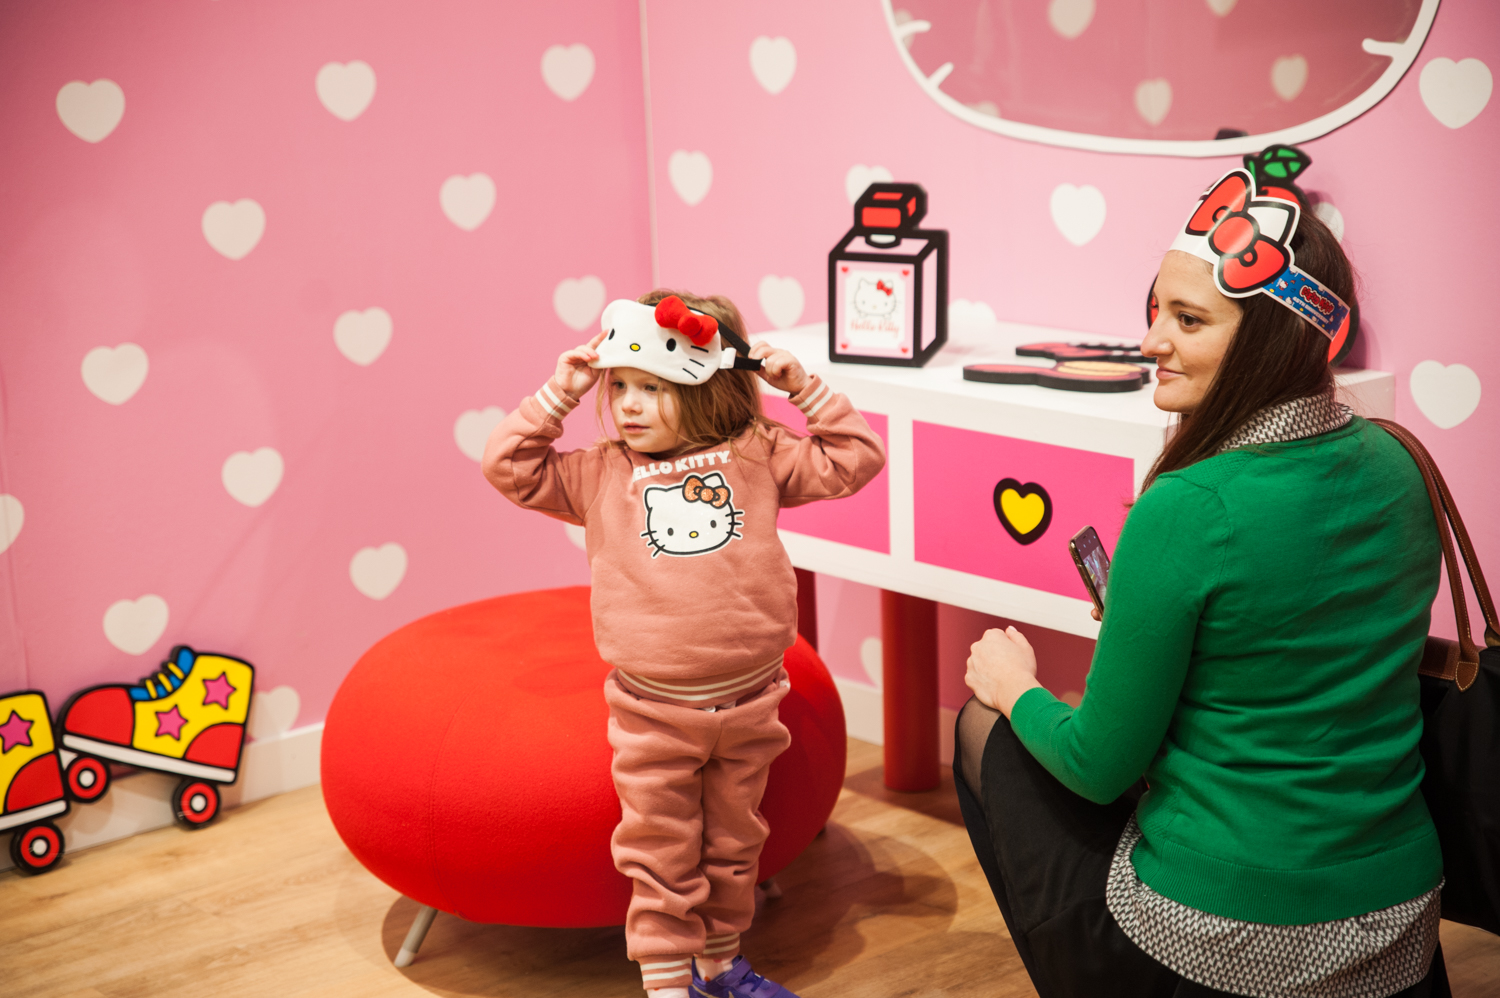 "The Hello Kitty Friends Around the World Tour has officially arrived in the Pacific Northwest for it's second time! Setting up shop in Bellevue until December 29, the immersive, sensory experience lets you walk through the world of Hello Kitty and her friends. 10,000 supercute square feet, the pop up has five rooms: London (Hello Kitty's house), Paris (Hello Kitty Cafe), New York, Honolulu, Tokyo and Baggage Claim (gift shop). While the pop up is open through 12/29, different days have different hours, so{&nbsp;}<a  href=""https://www.showclix.com/event/hello-kitty-seattle"" target=""_blank"">make sure you check those out before you go. Tickets start at $22.</a>{&nbsp;}(Image: Elizabeth Crook / Seattle Refined)"